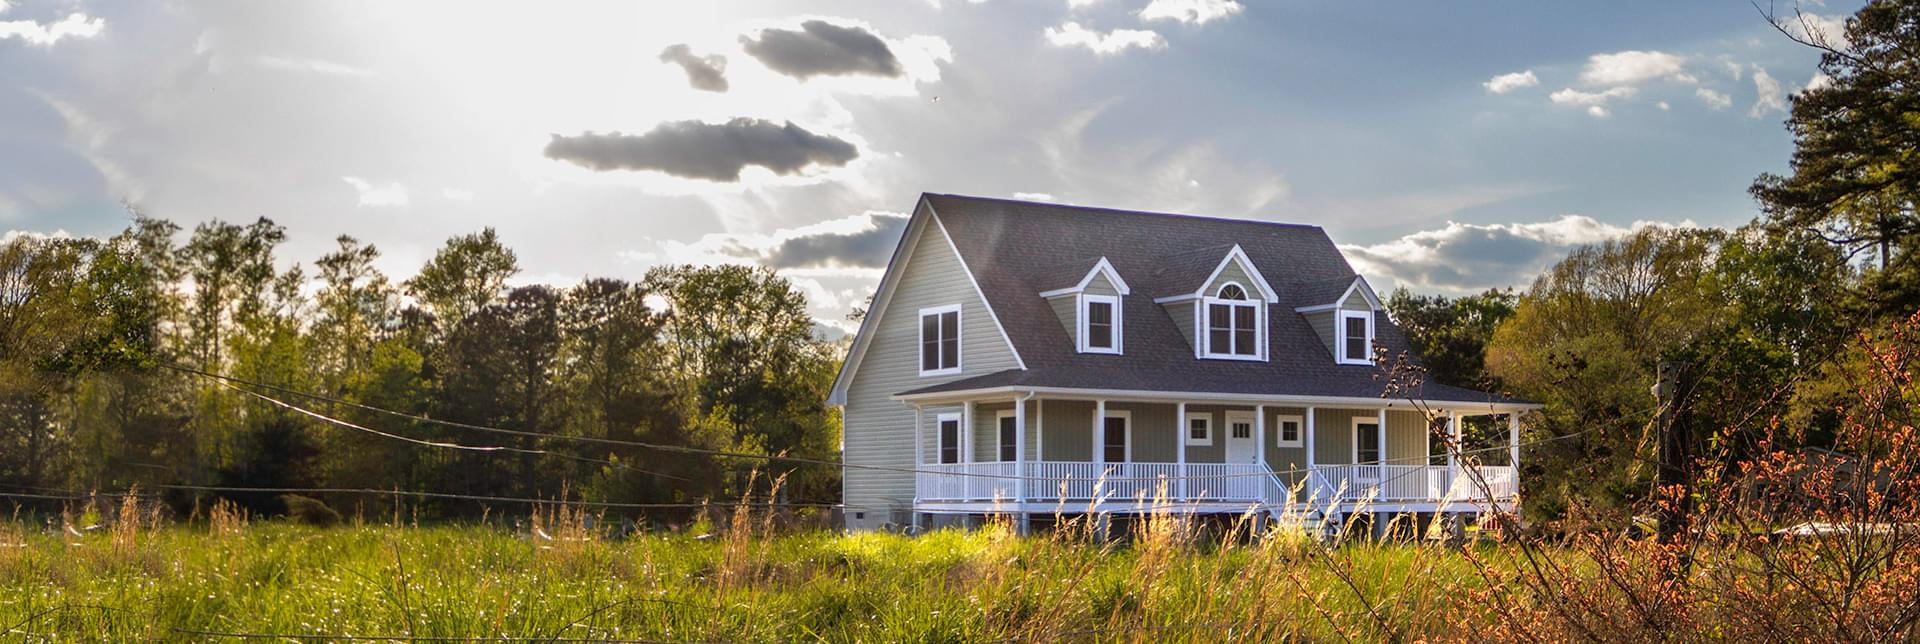 New Homes in King and Queen County VA